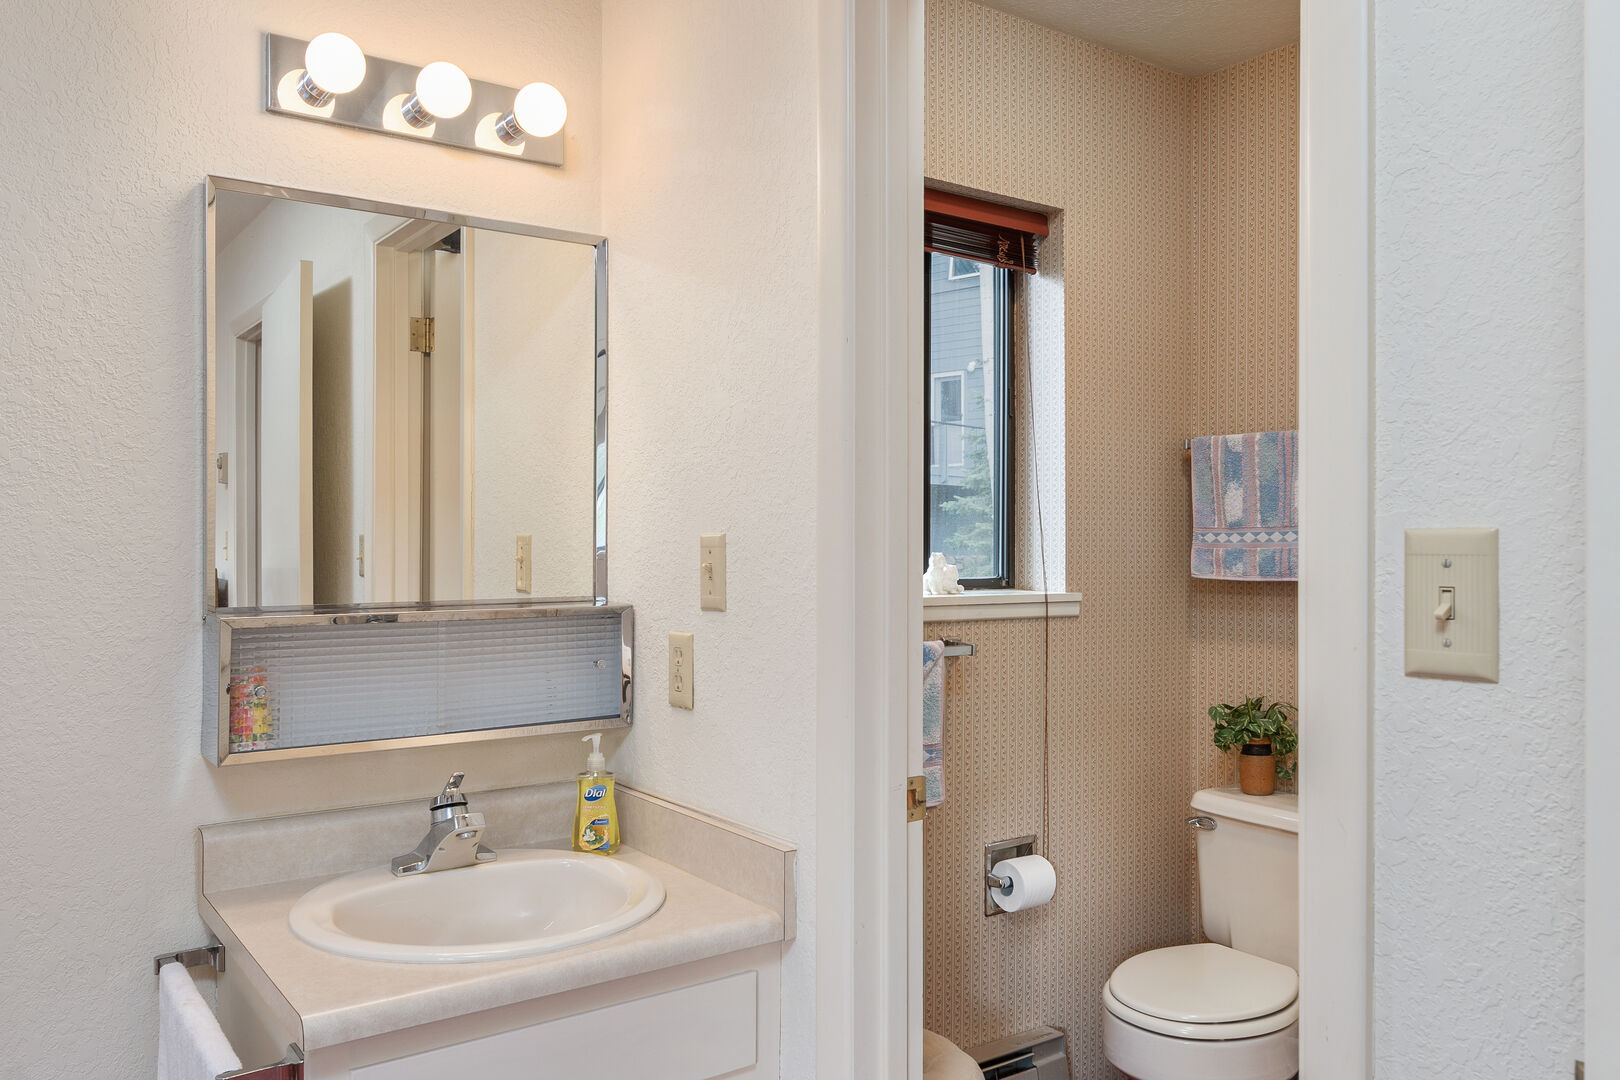 Shared full bathroom between 2nd and 3rd bedroom